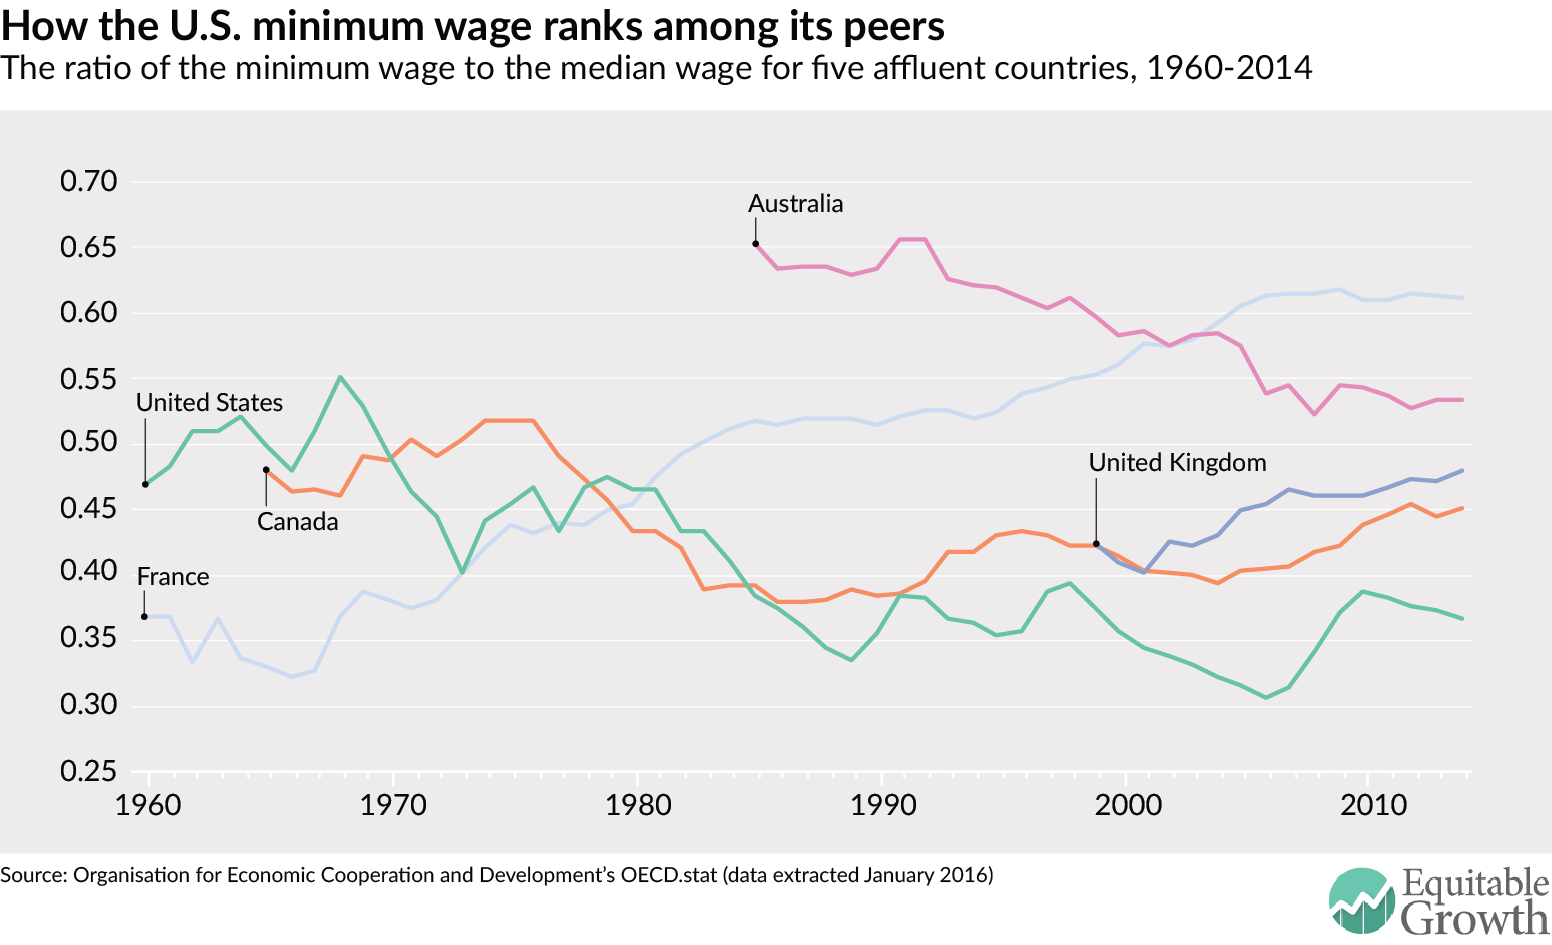 the minimum wage landscape in affluent nations